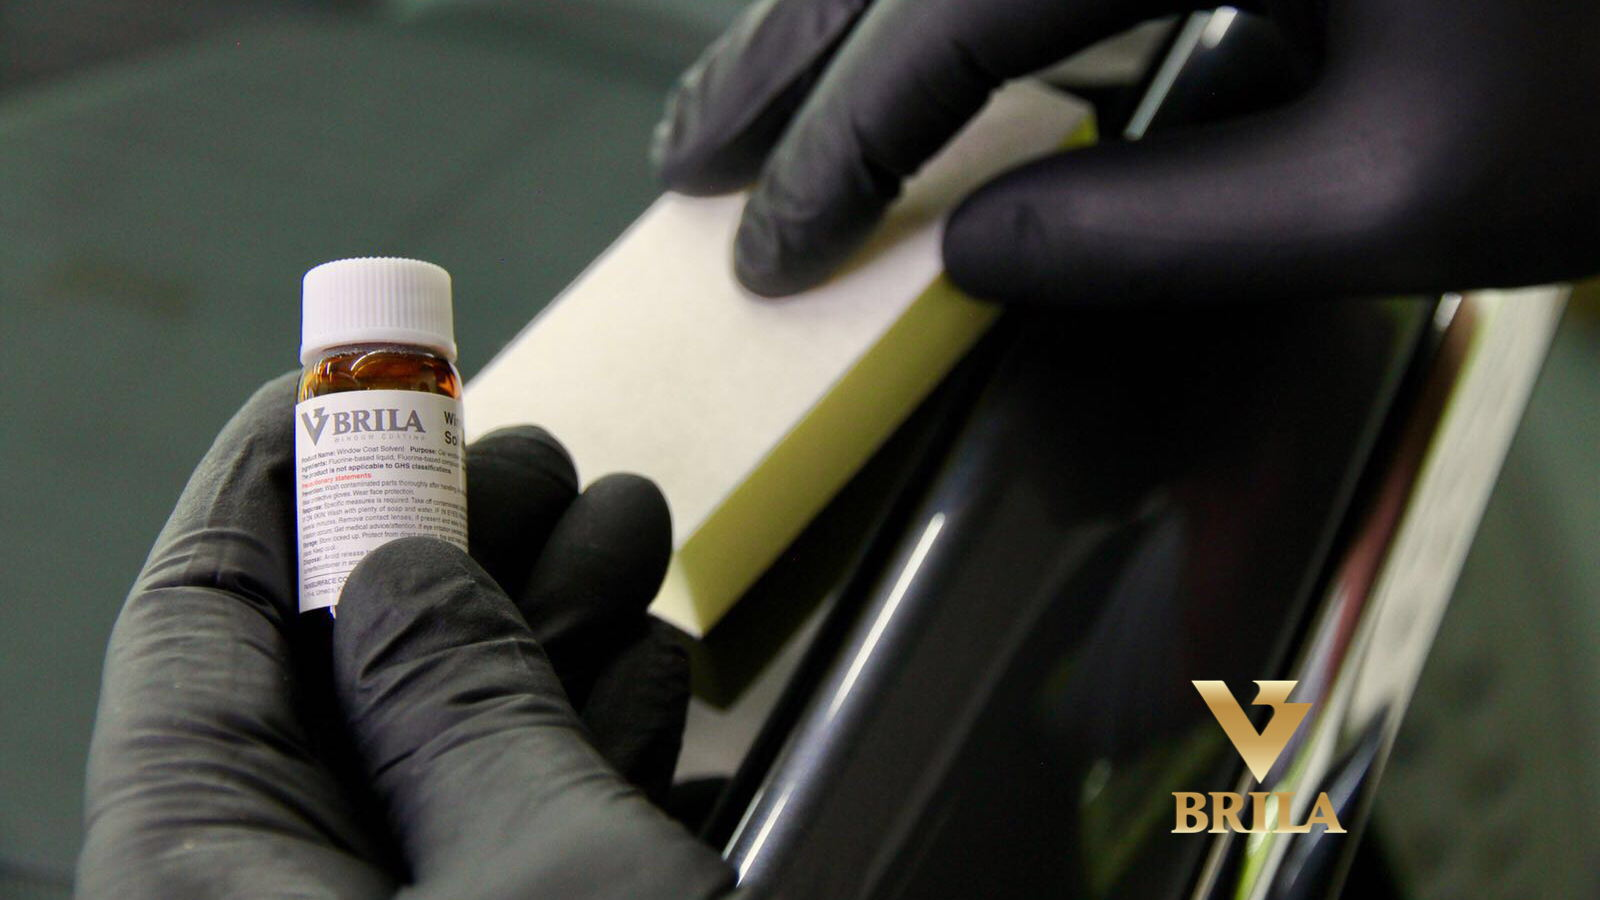 Brila glass coating, das revolutionäre Beschichtungssystem.